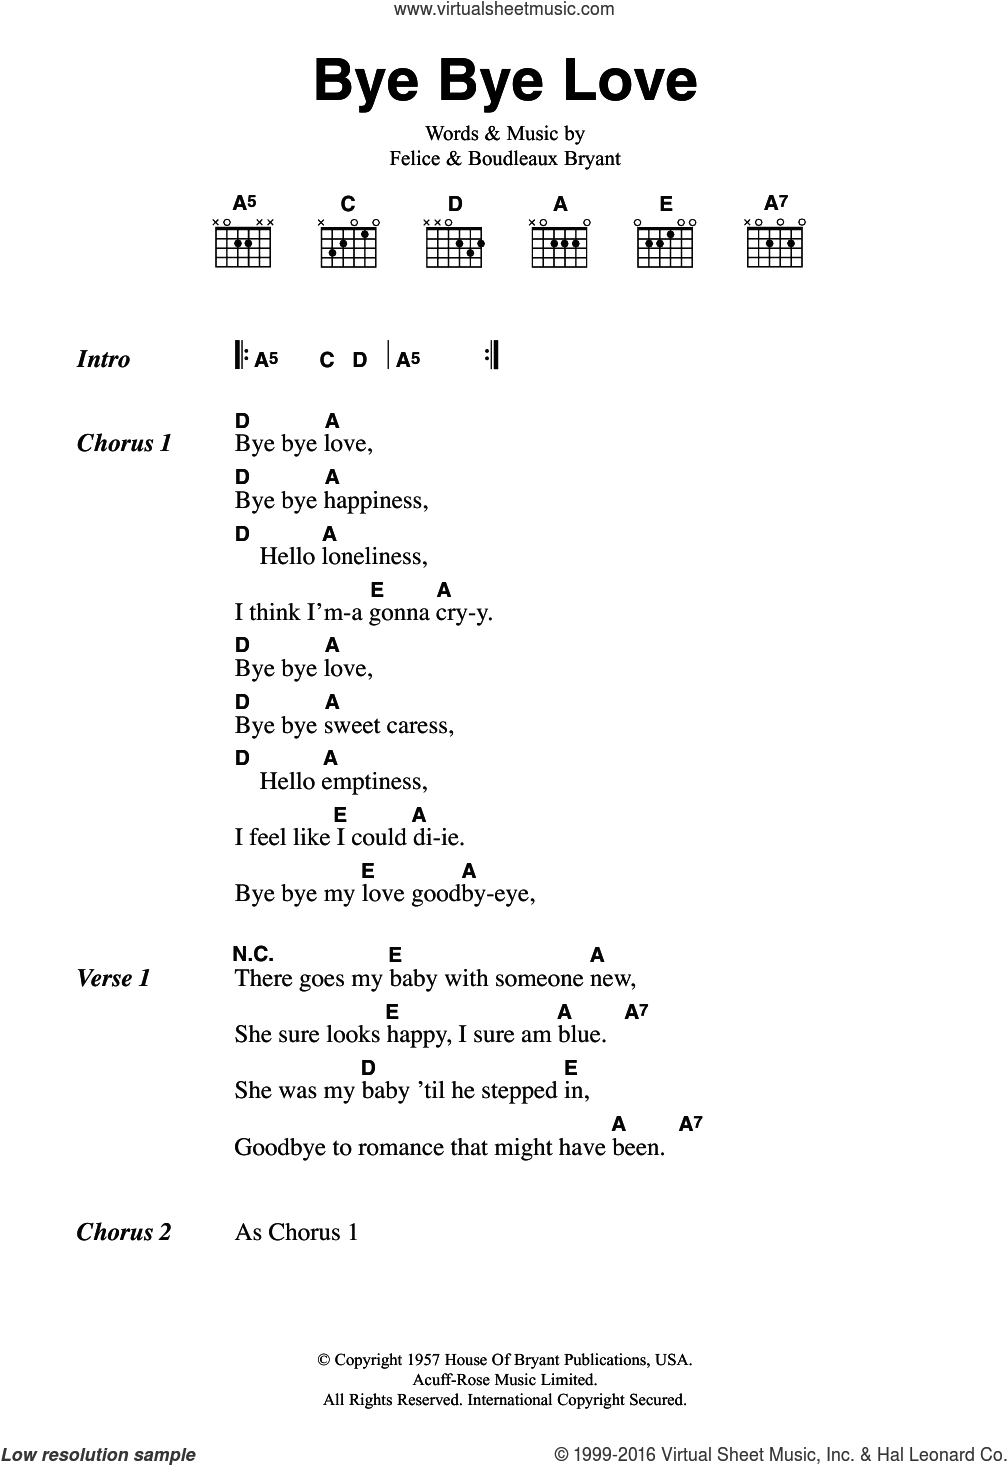 Bye Bye Love sheet music for guitar (chords) by The Everly Brothers, Boudleaux Bryant and Felice Bryant, intermediate skill level